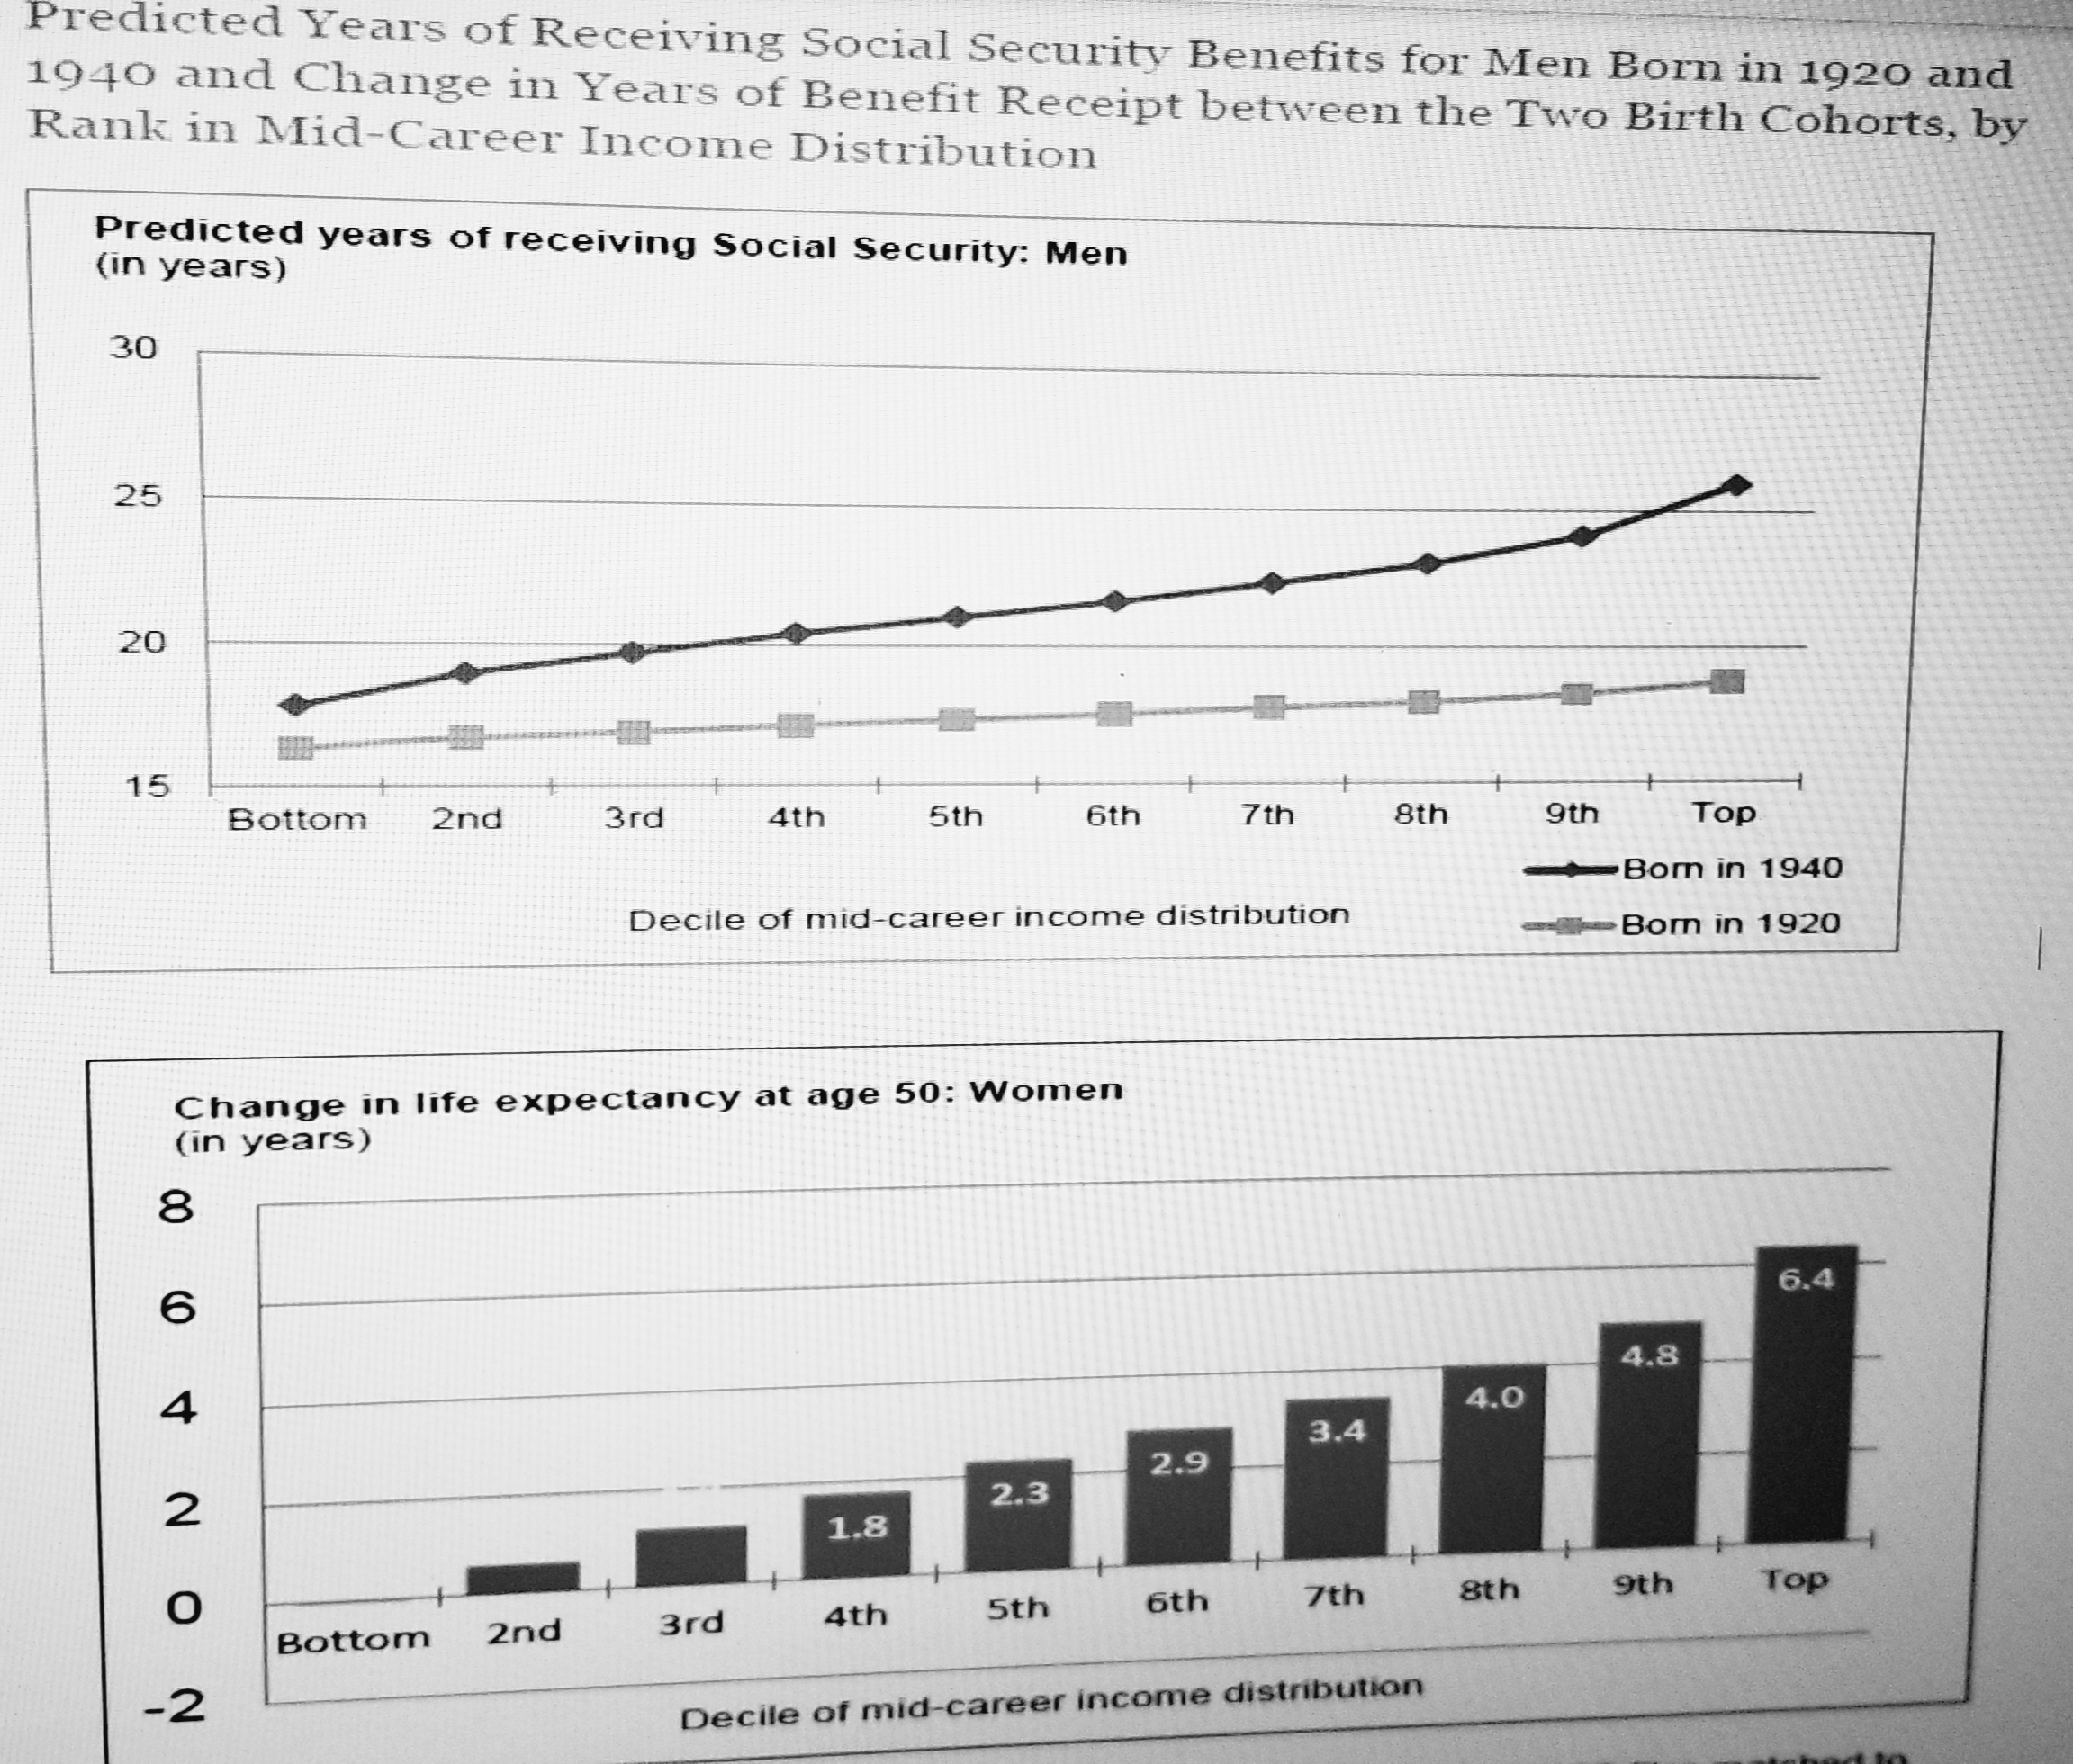 Predicted Years of Receiving Social Secuity Benefits for Men Born in 1920 and 1940 and Change in Years of Benefit Receipt between the Two Birth Cohorts, by Rank in Mid-Career Income Distribution Predicted years of receiving Social Security: Men (in years) 30 25 20 15 8th Top Bom in 1940 Born in 1920 Bottom 2nd 3rd 4th 5th 6th 7th 9th Decile of mid-career income distribution Change in life expectancy at age 50: Women (in years) 8 6 4 2 6.4 4.8 4.0 3.4 2.9 2.3 1.8 7th 8th 9th Top Sth 6th 3rd 4th Bottom 2nd -2 Decile of mid-career income distribution